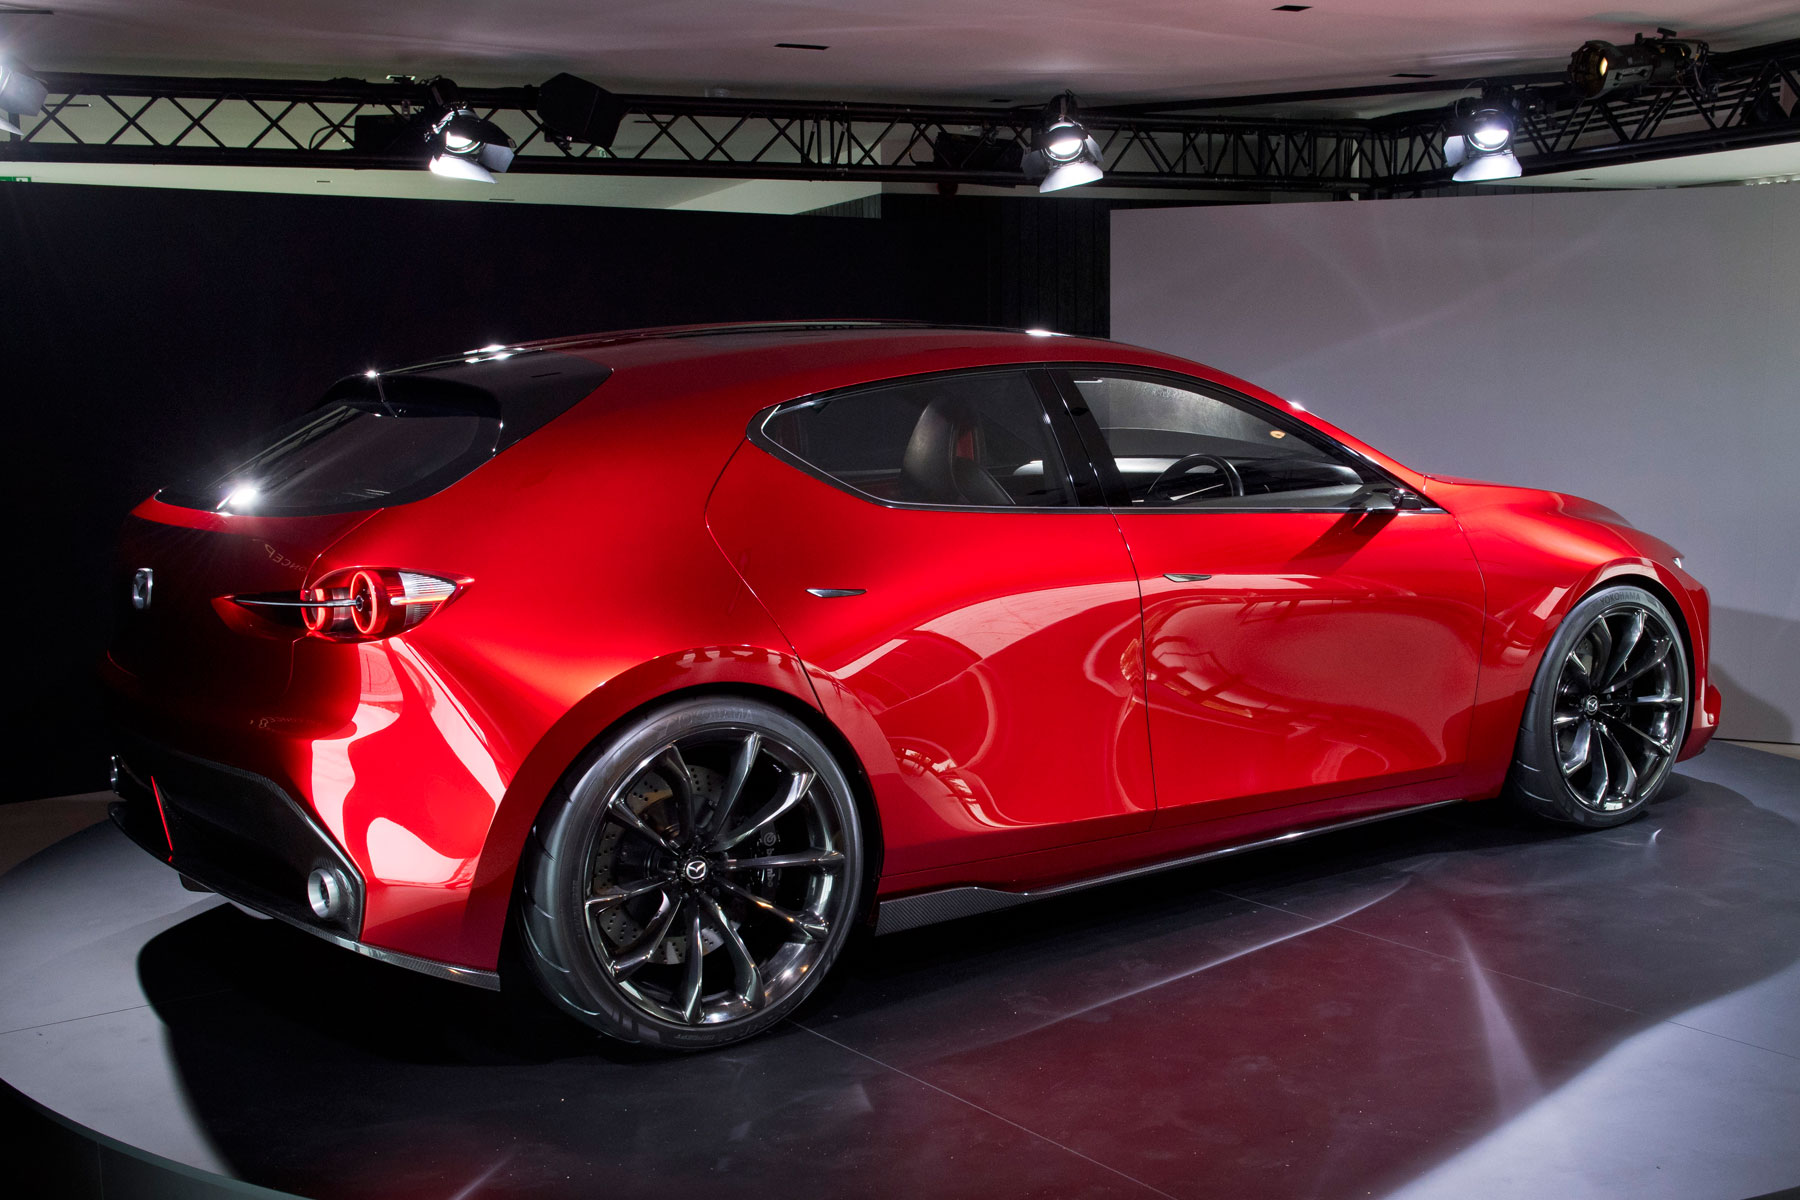 mazda s new skyactiv x engine proves there s a future in petrol power. Black Bedroom Furniture Sets. Home Design Ideas